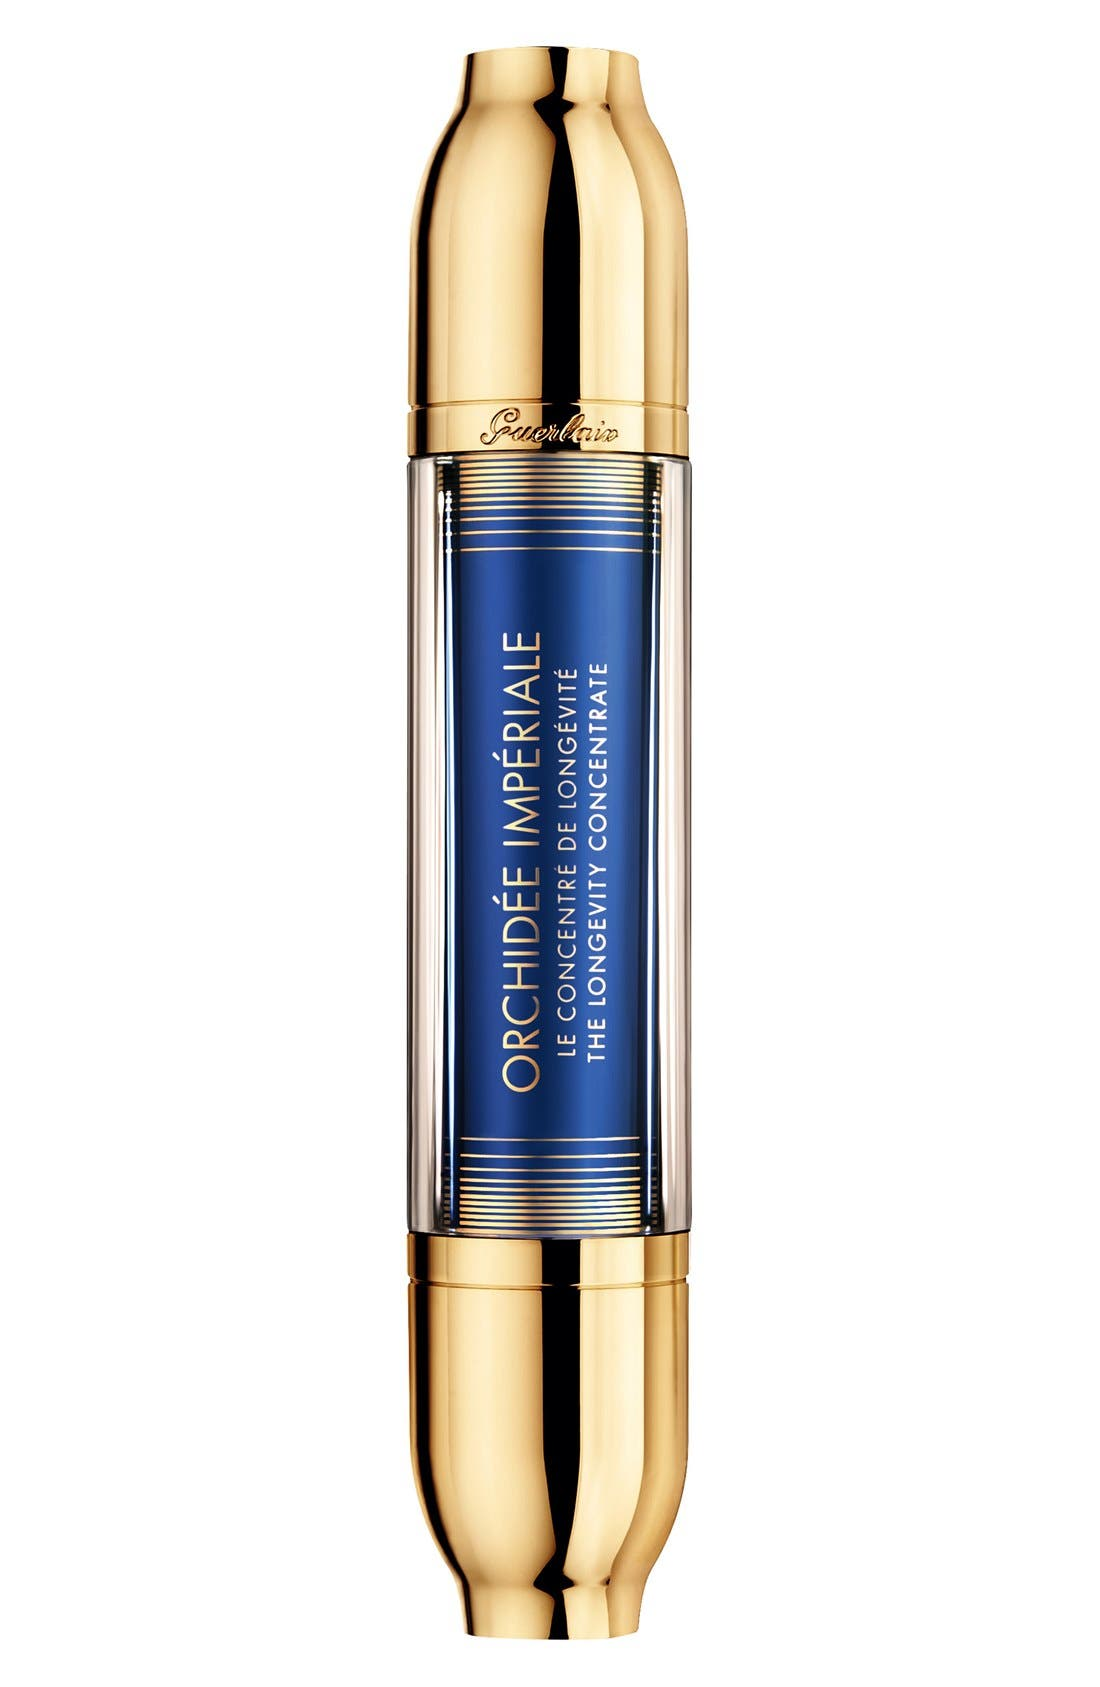 Guerlain 'Orchidée Impériale' Longevity Concentrate Intense Replenishing